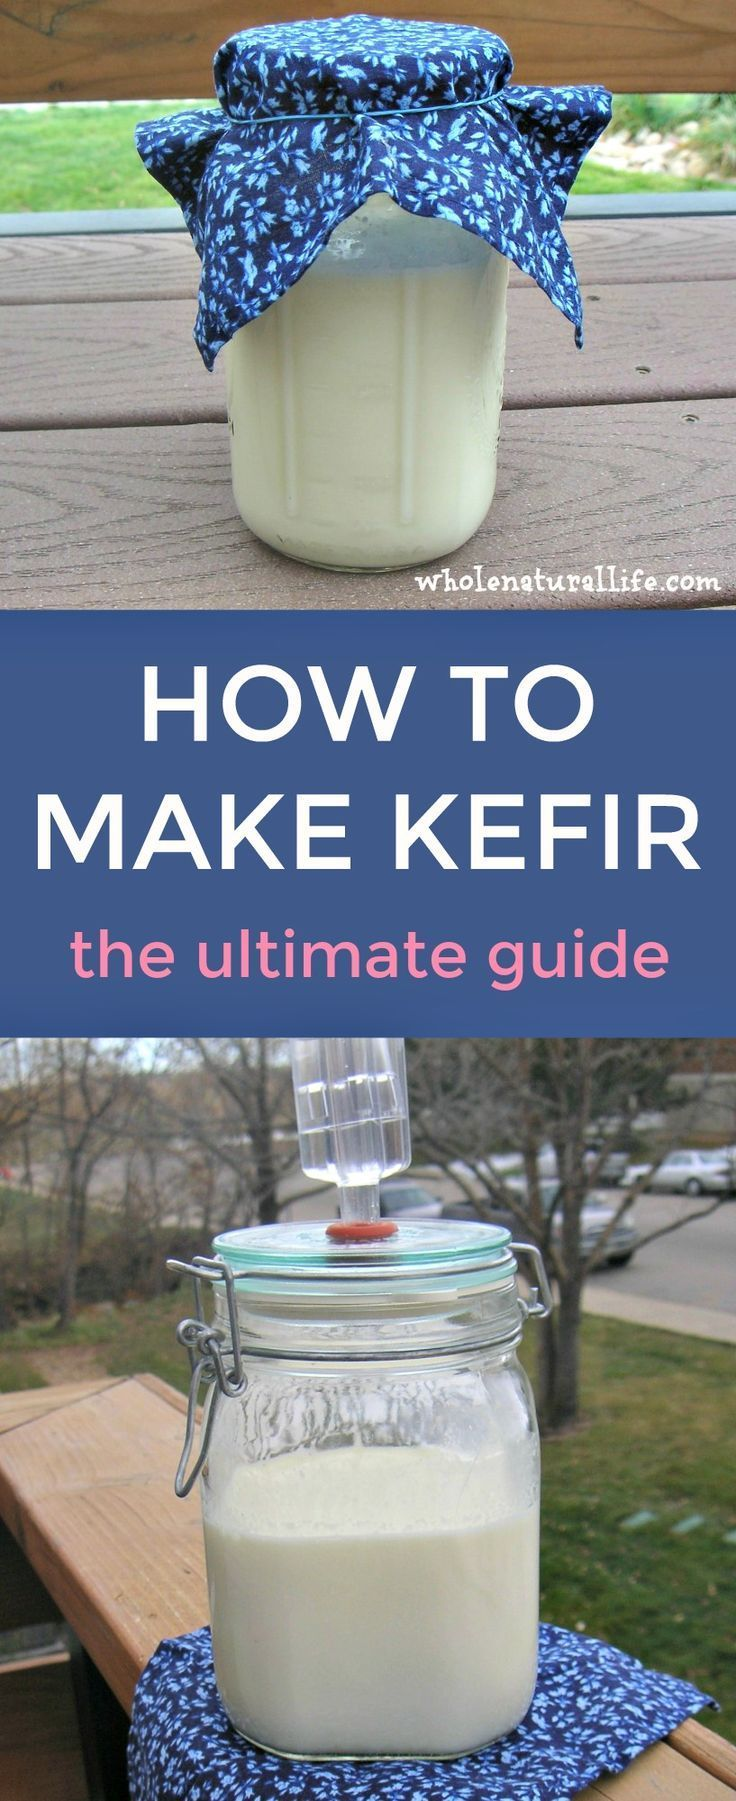 How to Make Kefir - MAKE IT VEGAN WITH SOY OR OAT OR COCONUT MILK| Homemade kefir | Milk kefir | What is kefir